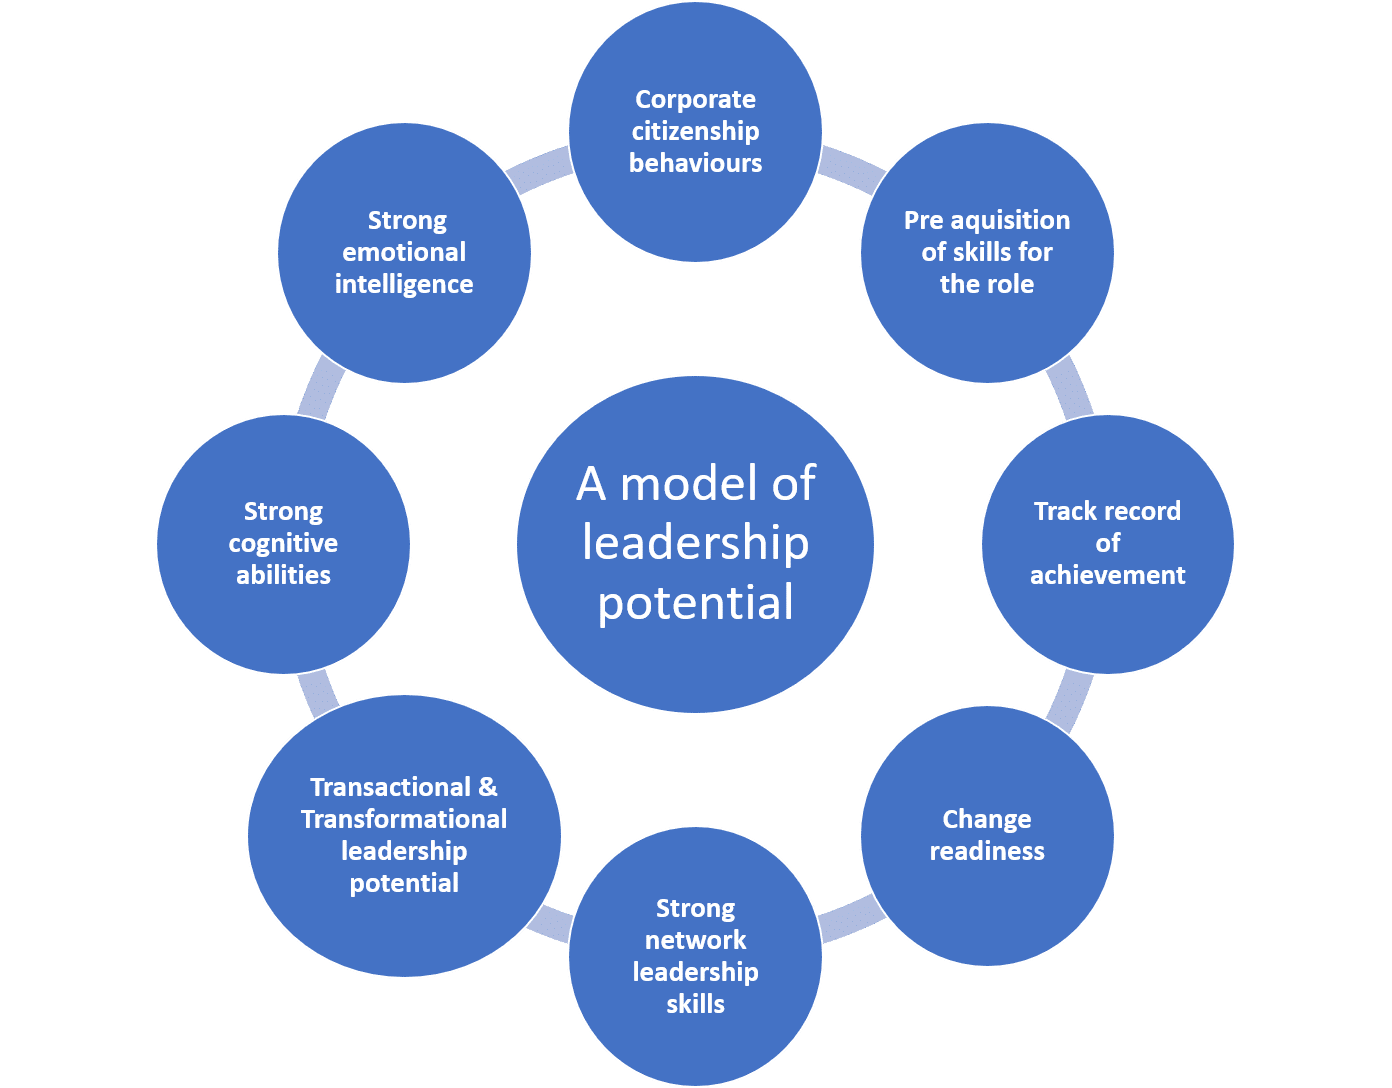 Unlocking the potential of executives